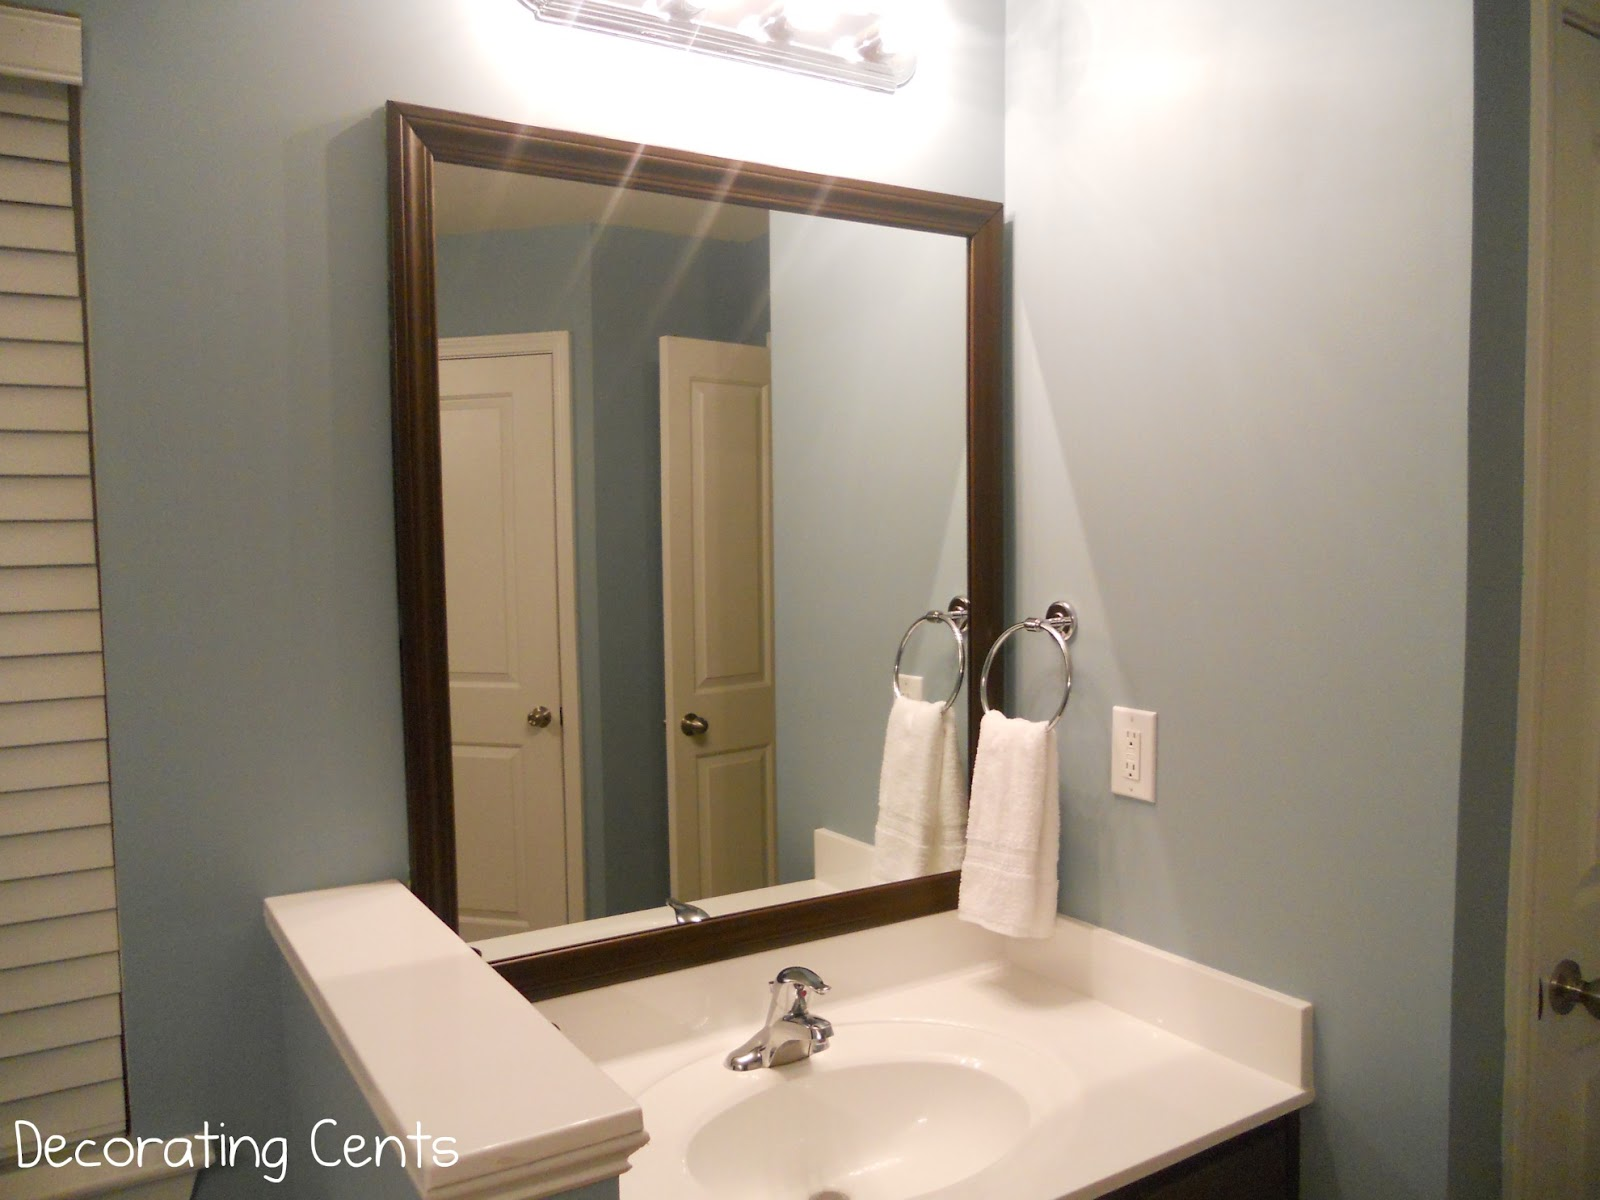 Mirror In The Bathroom Endearing Decorating Cents Framing The Bathroom Mirrors Review